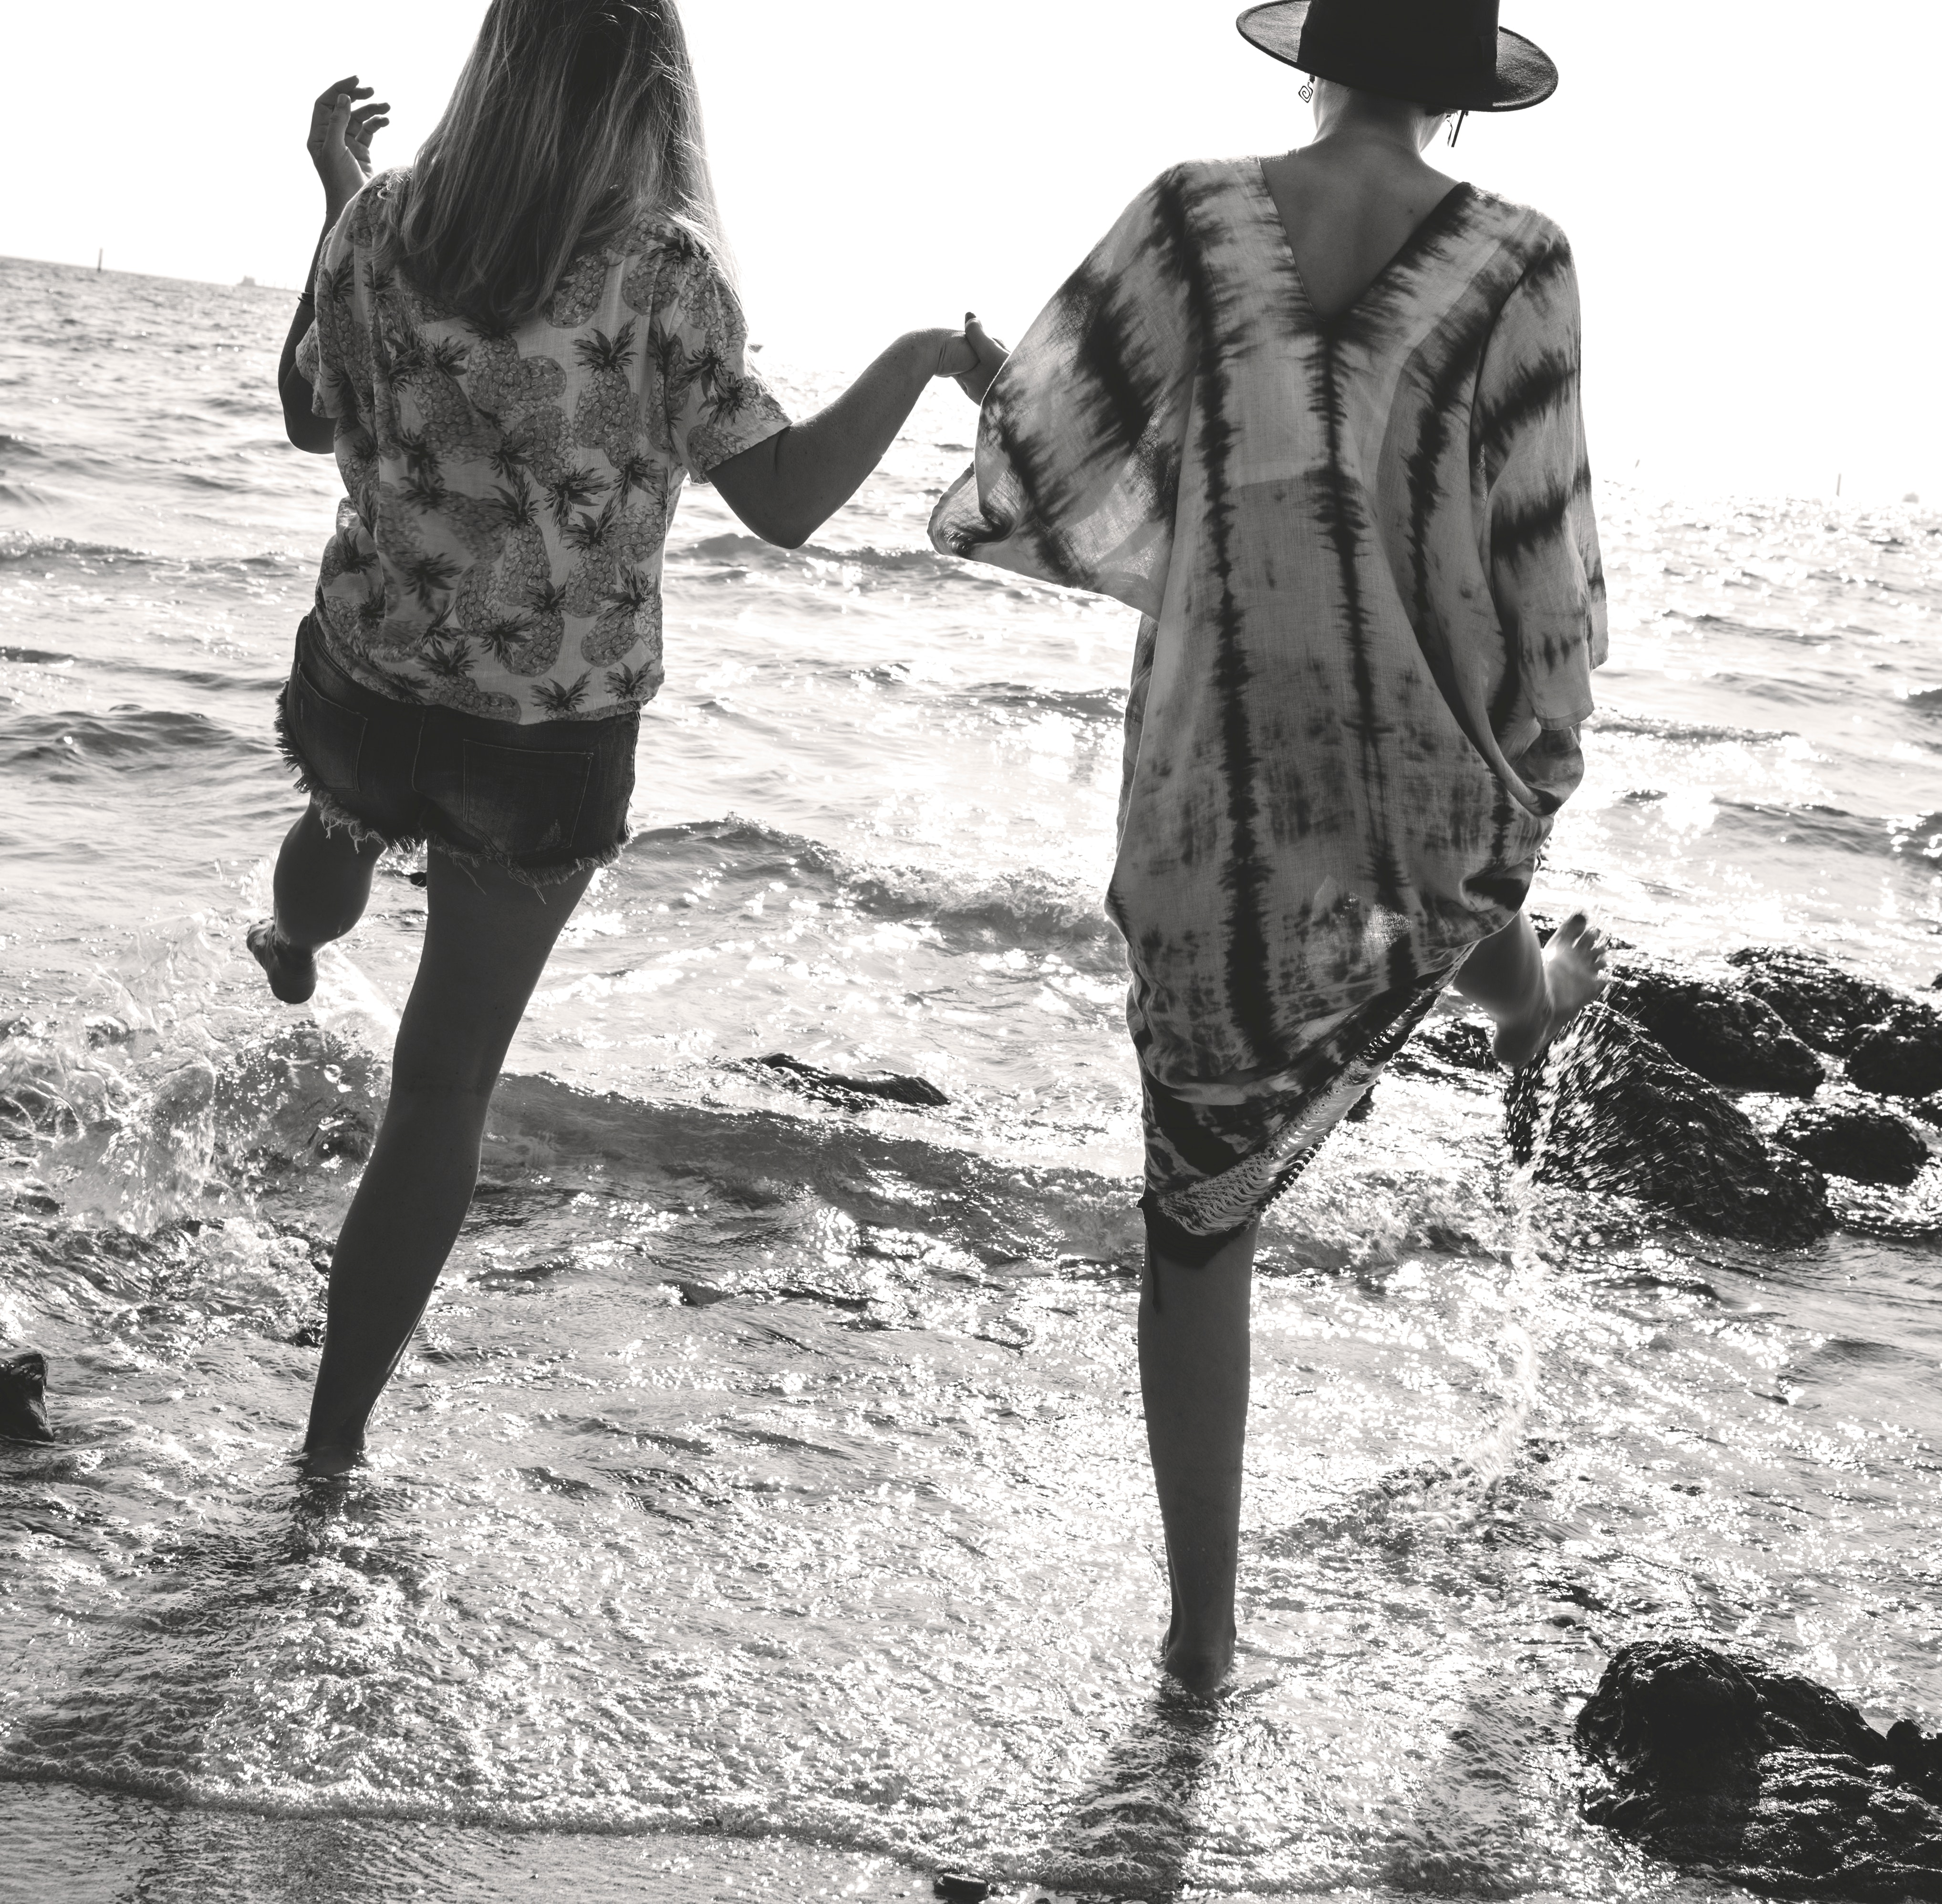 Grayscale Photograph of 2 Women Holding Hands While Walking on Sea Shore, Sunny, Portrait, Recreation, Relaxation, HQ Photo